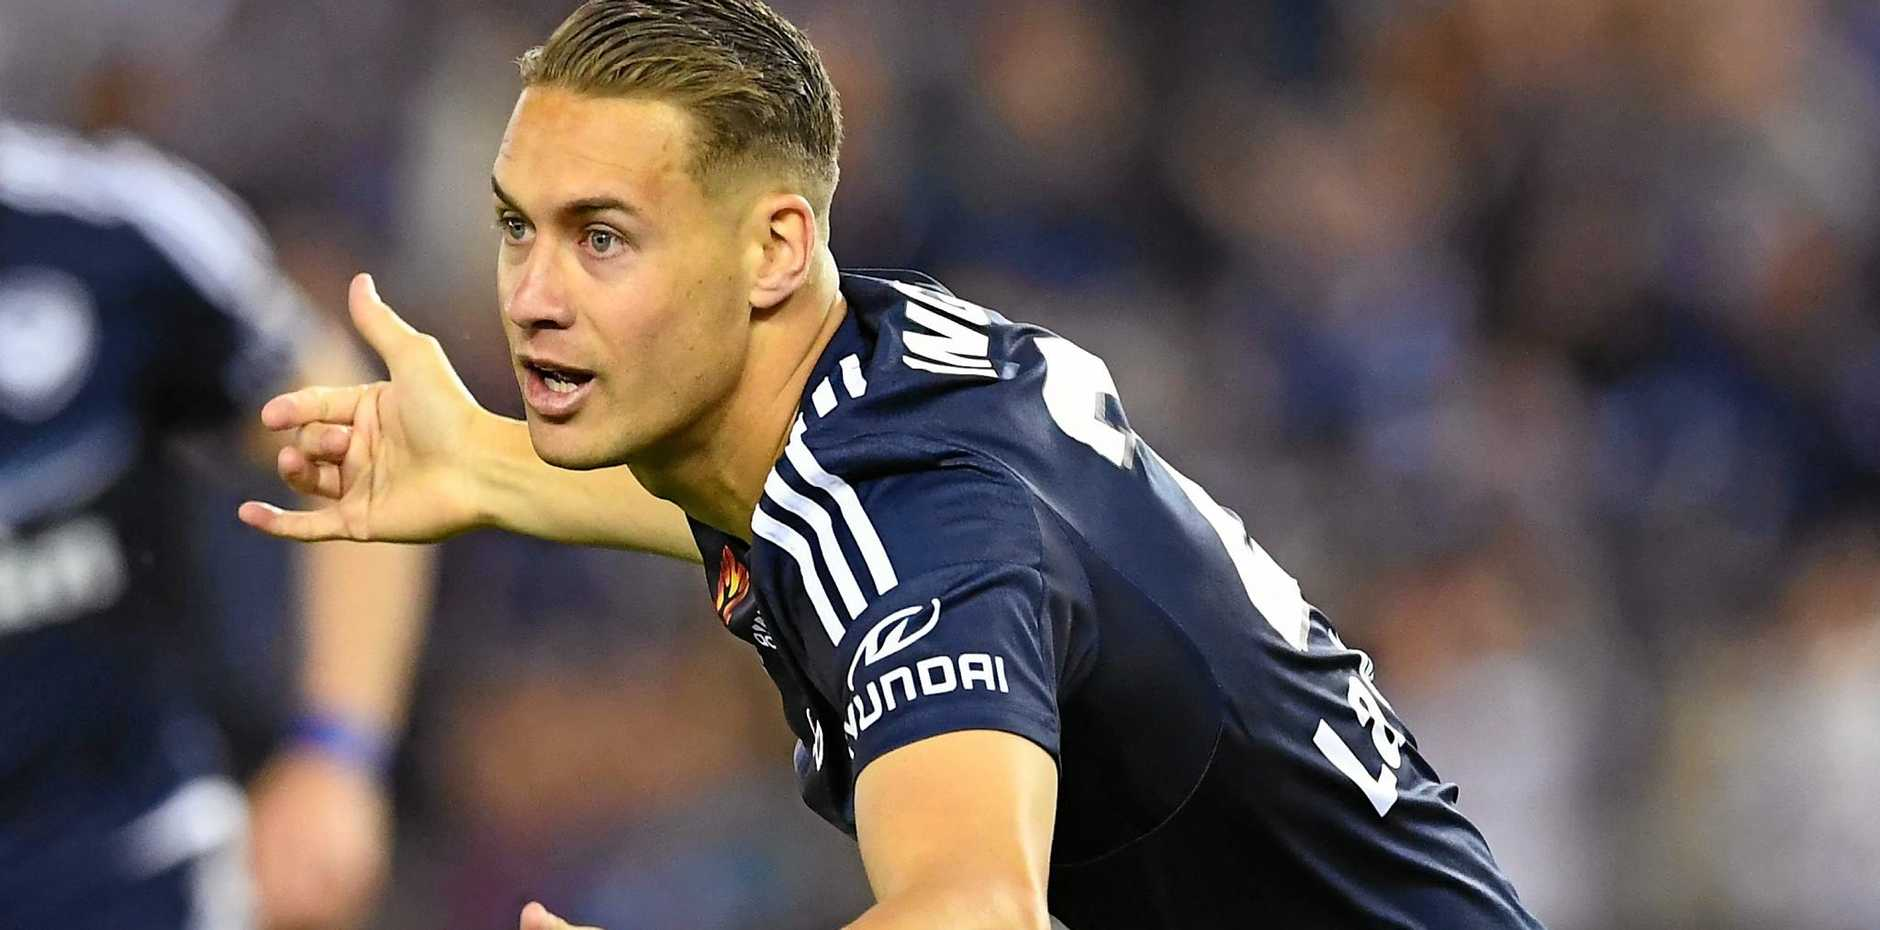 Jai Ingham will be monitored by the Victory after returning from international duty with New Zealand.